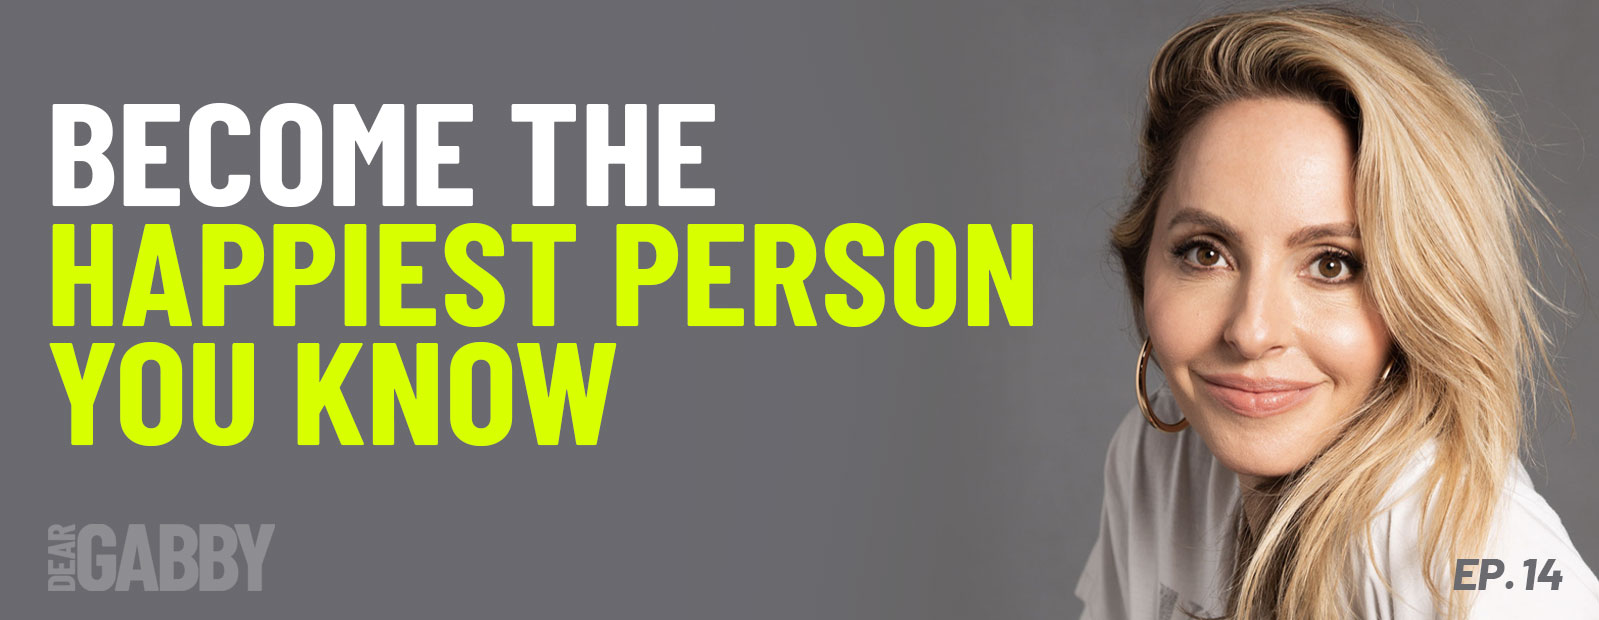 Become the Happiest Person You Know